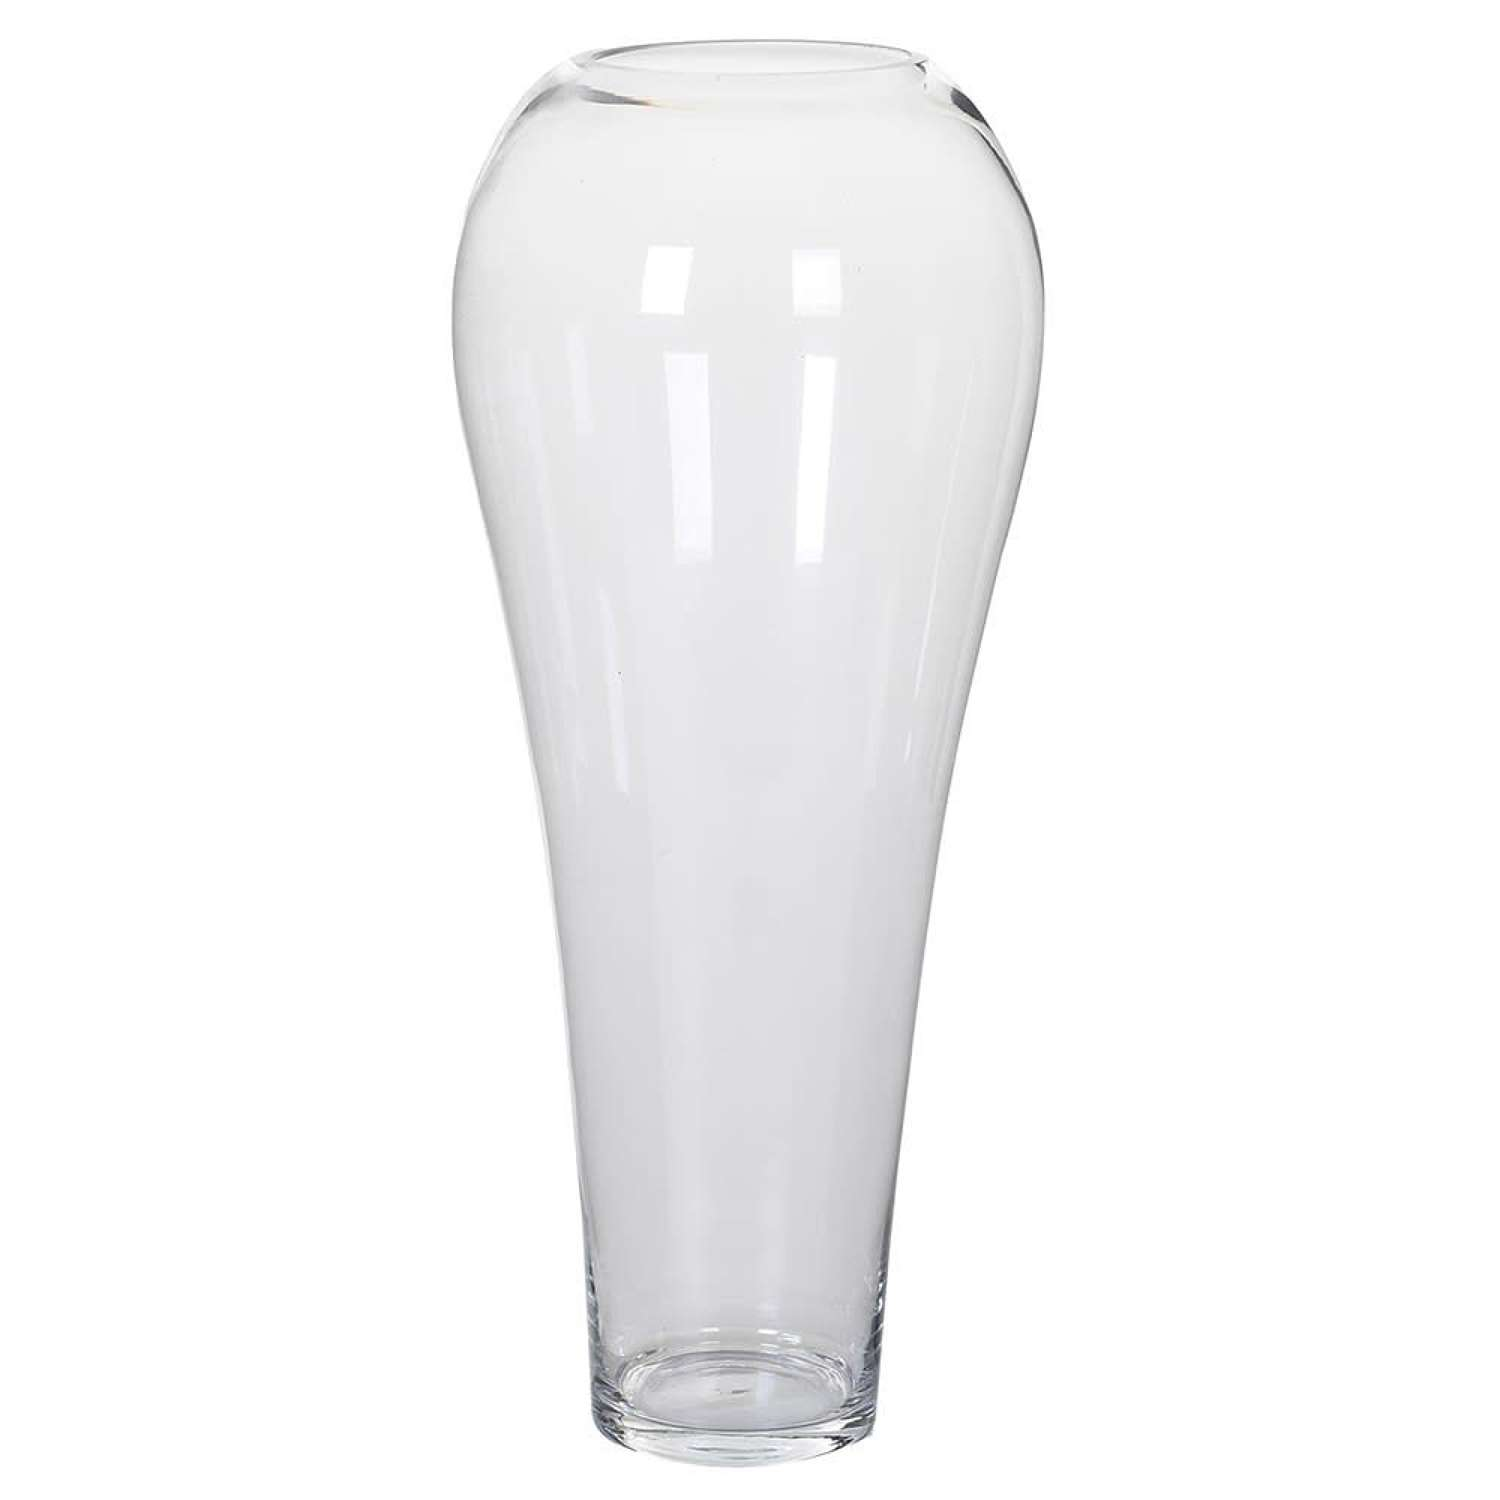 Tall Shaped Glass Vase